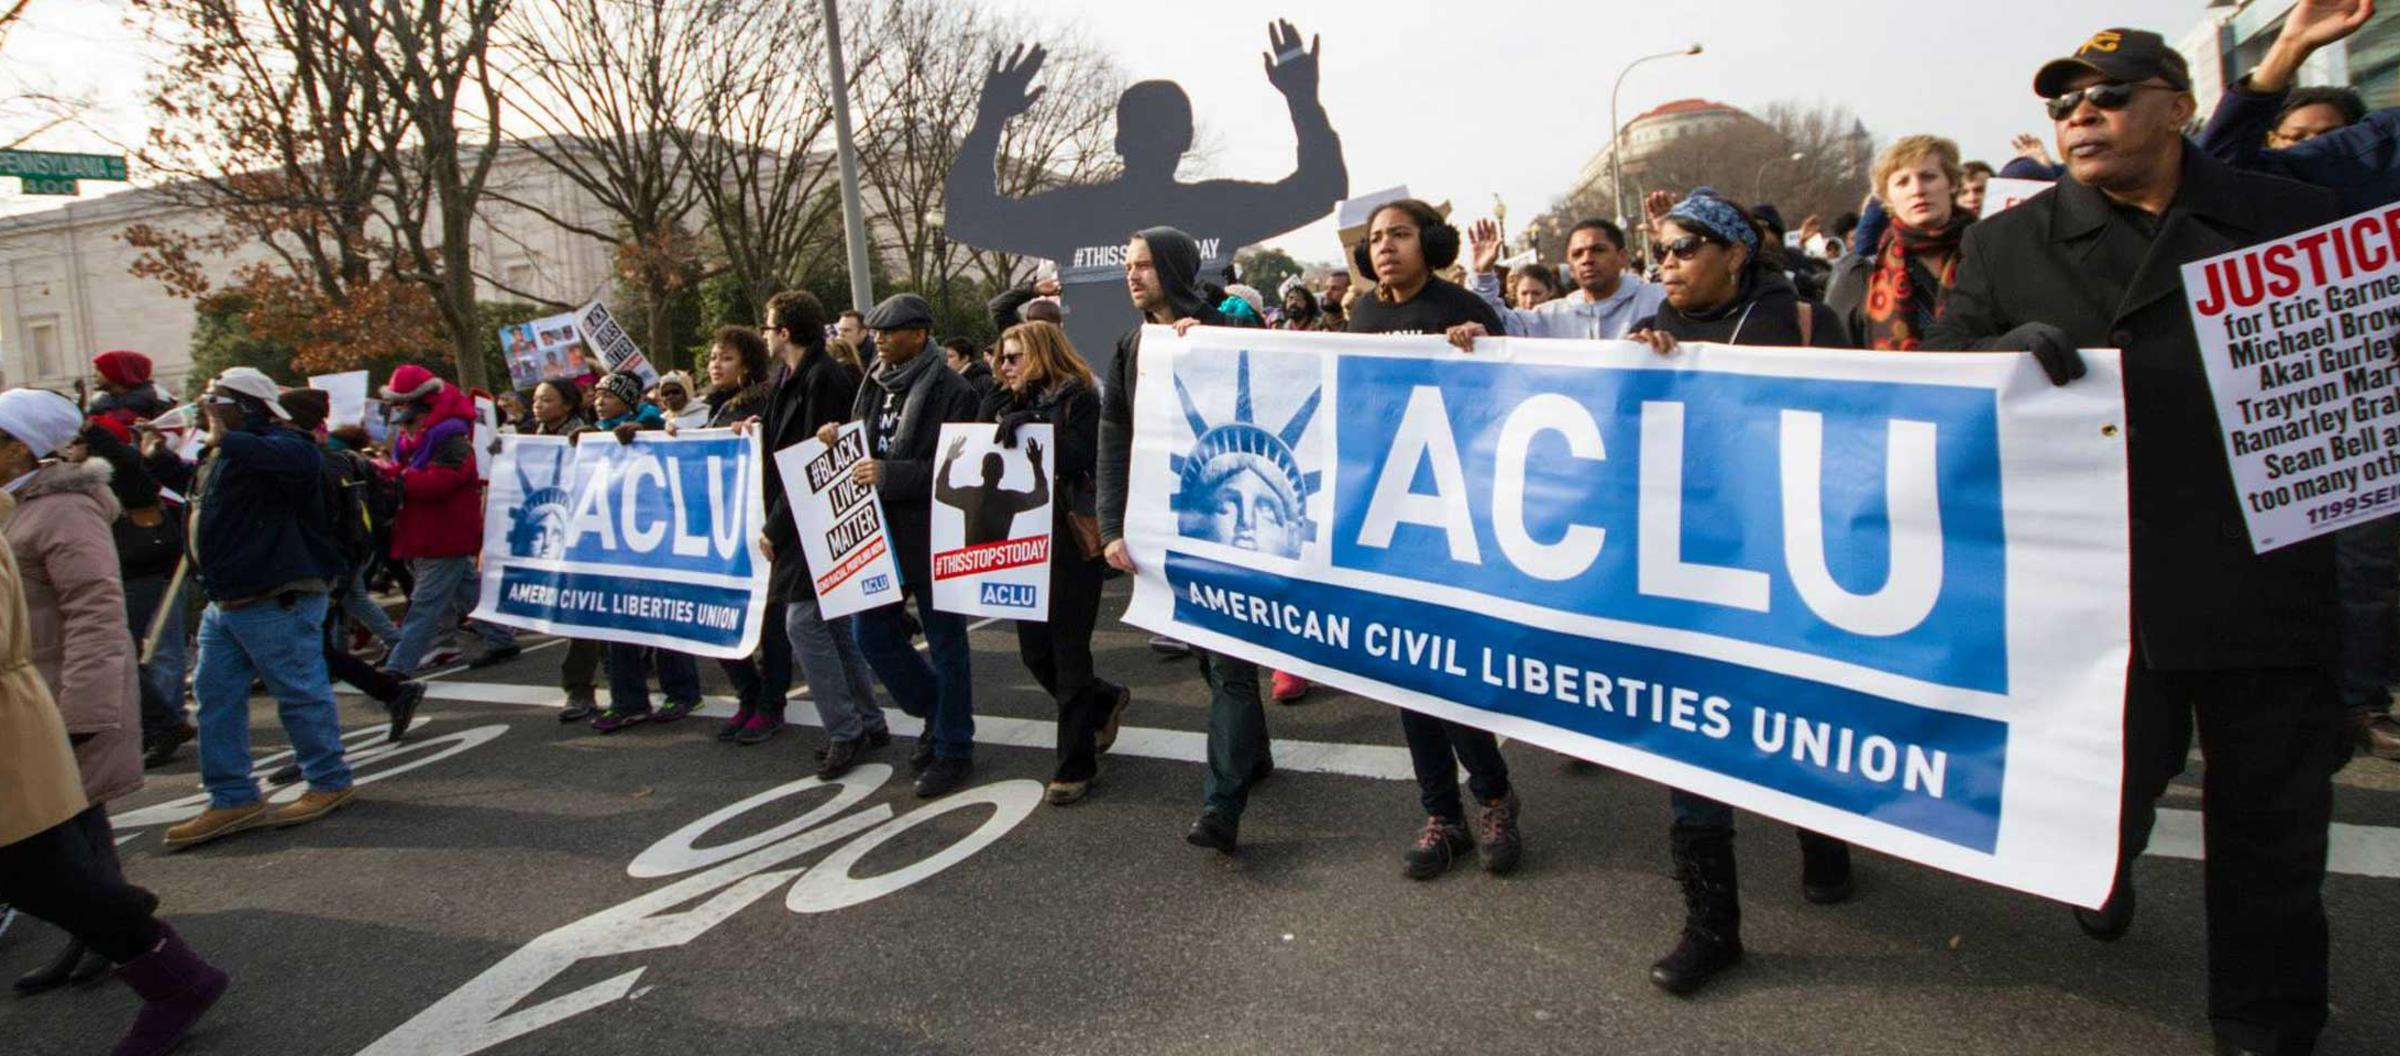 ACLU Civil Rights